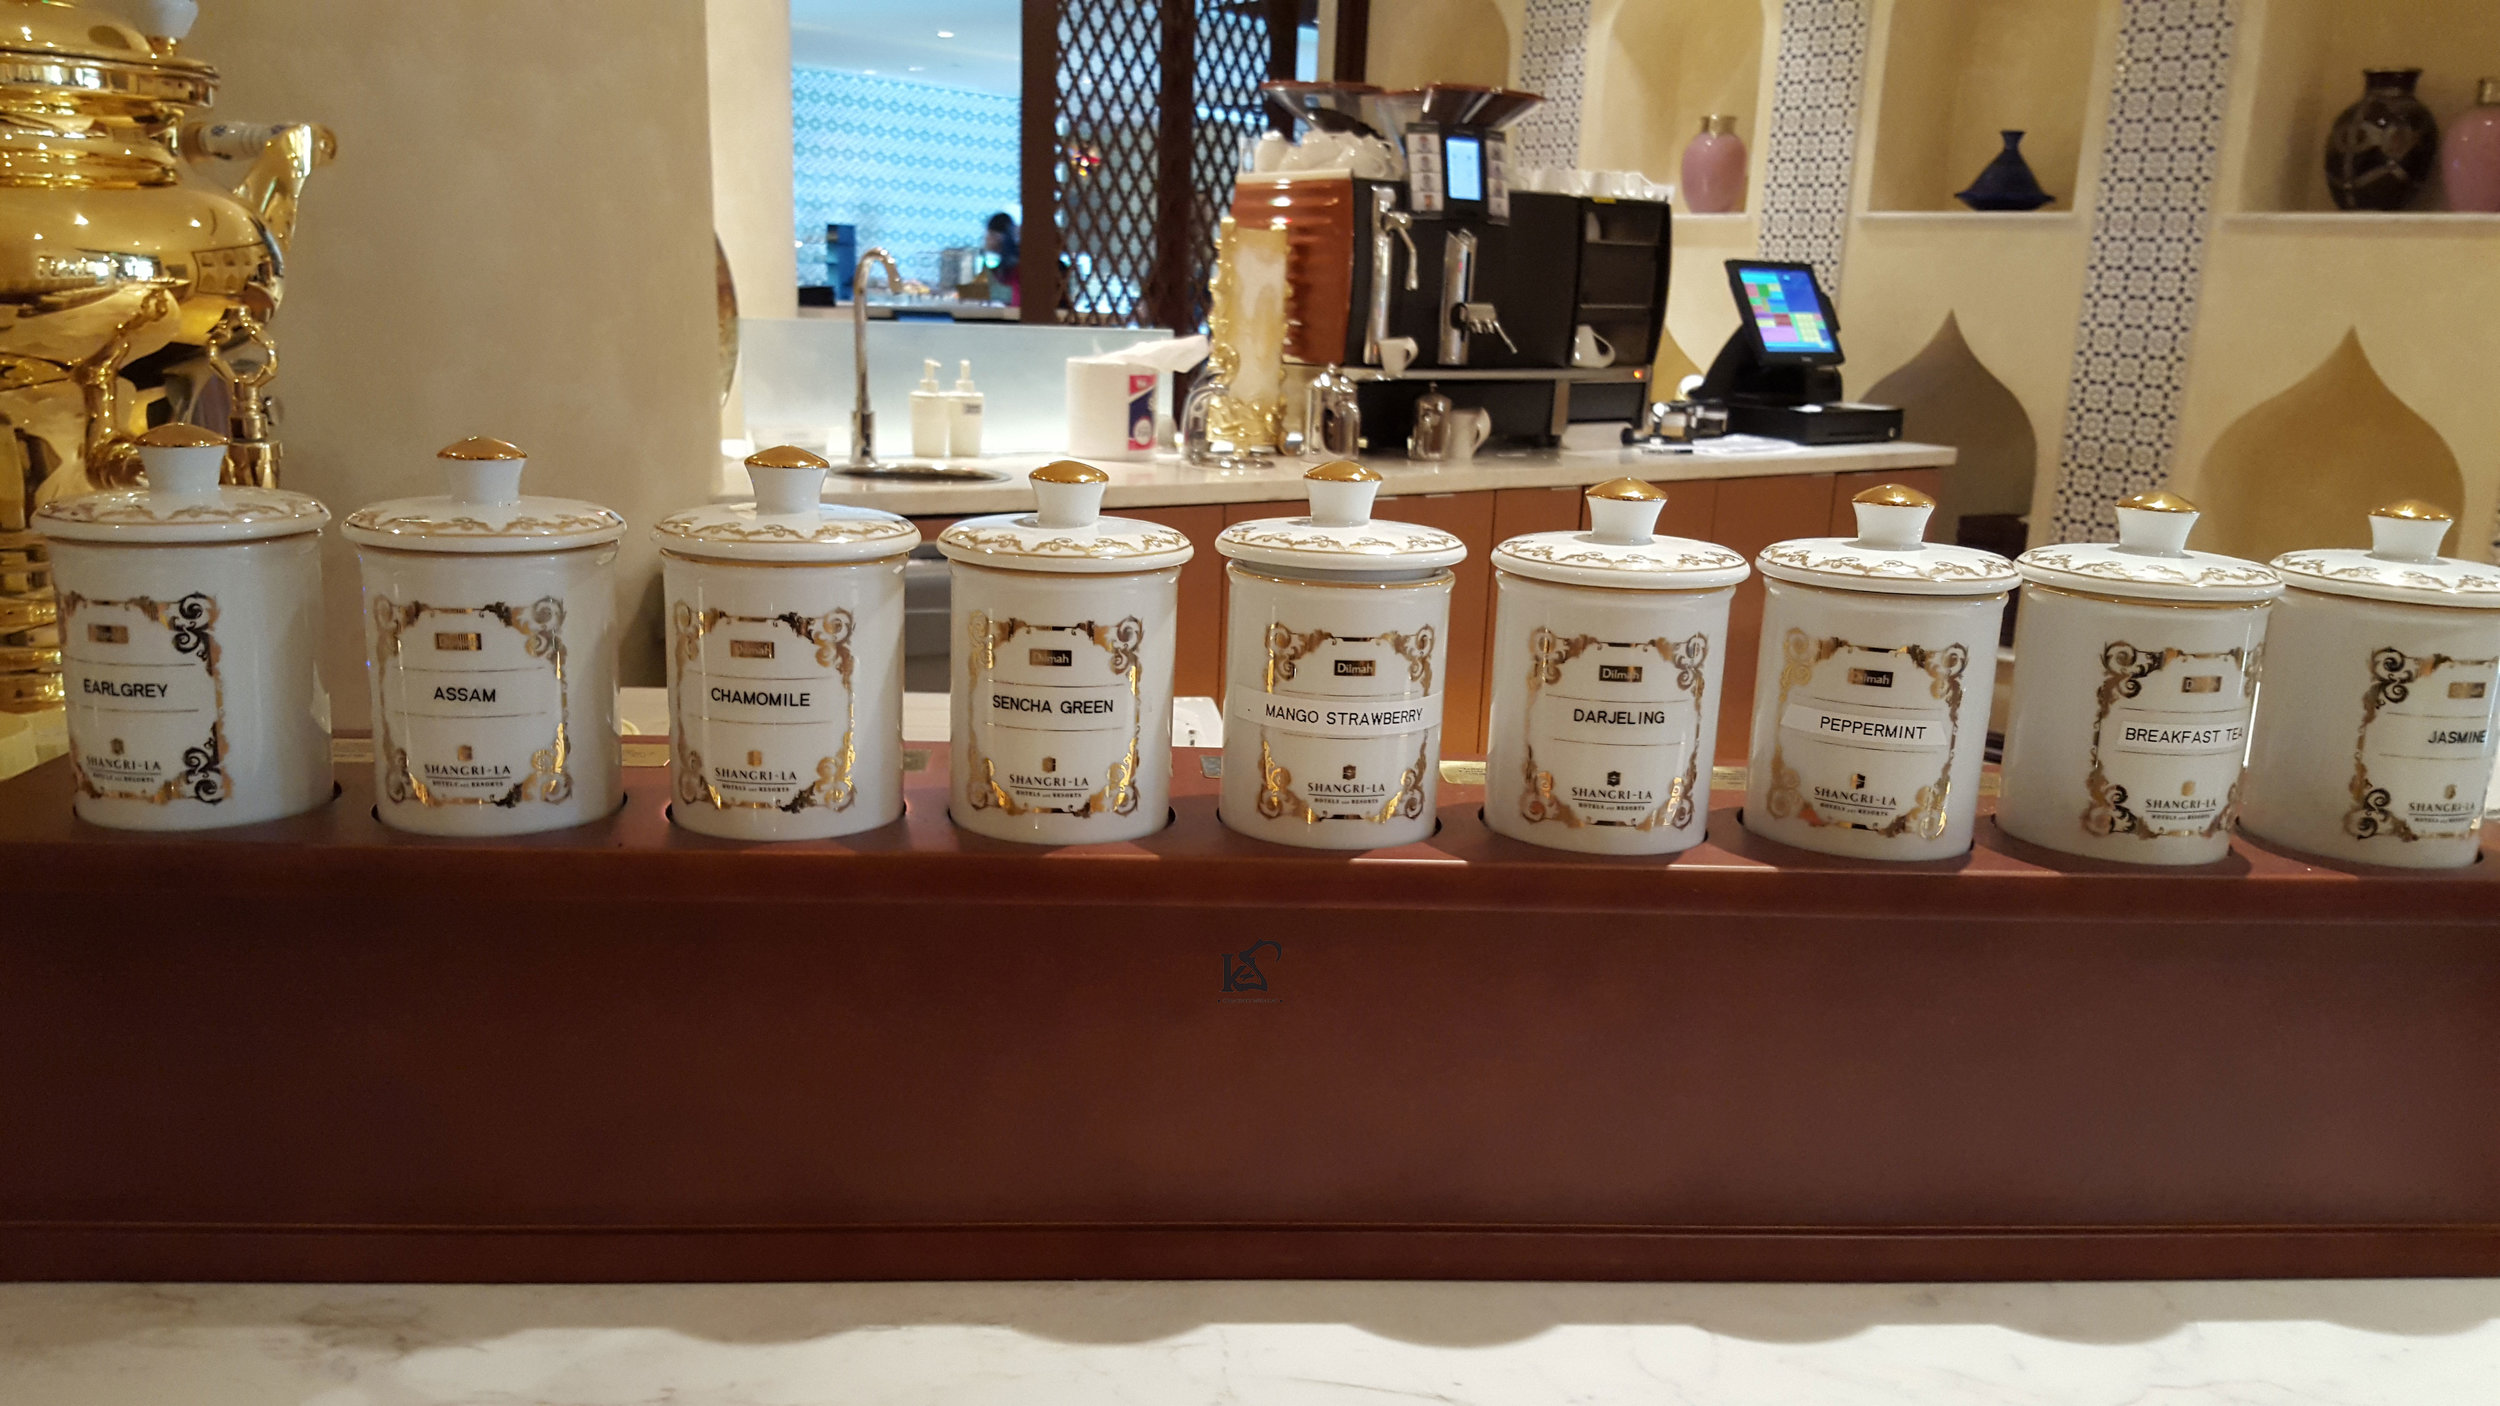 Look at these choice of teas! It's a lot,and it's beautiful